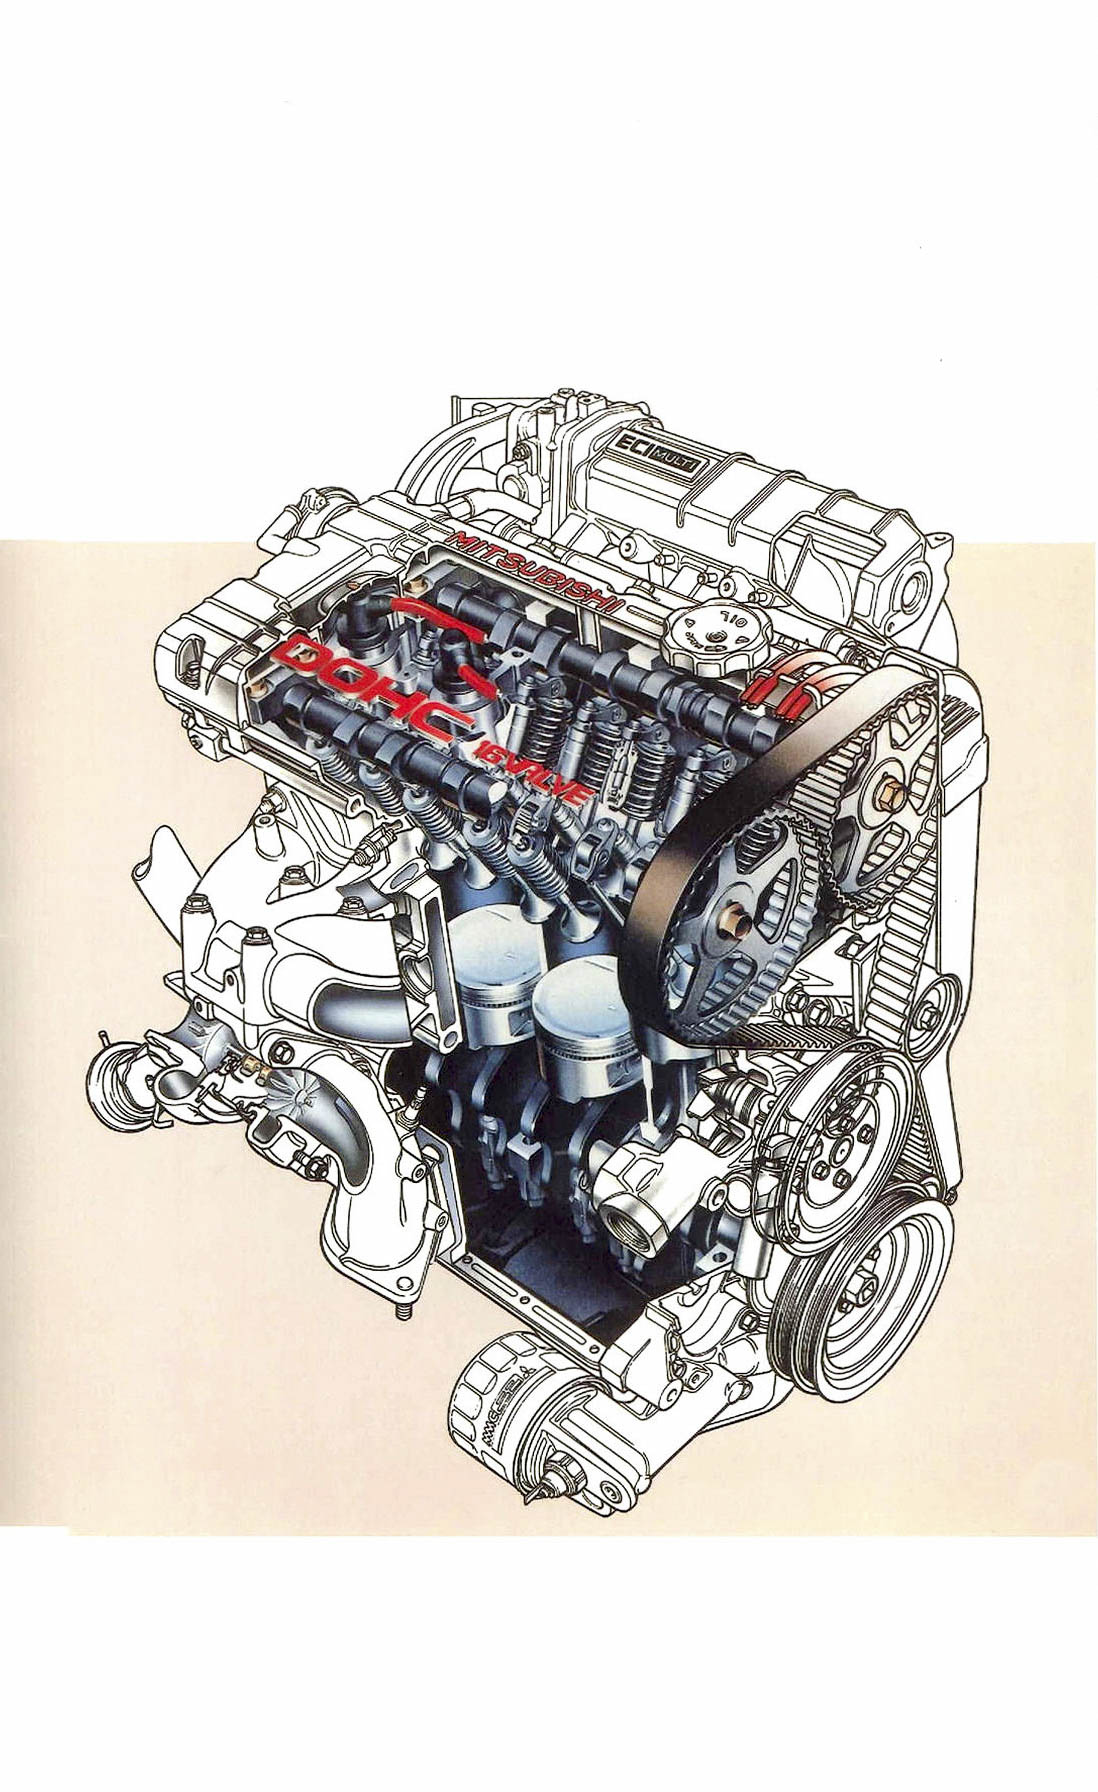 The 1989 Dodge Colt turbo was powered by the DOHC 1.6-liter version of the Mitsubishi 4G63 four-cylinder engine that was to '90s and 2000s tuners what the Flathead Ford V-8 was to '40s and '50s hot-rodders.